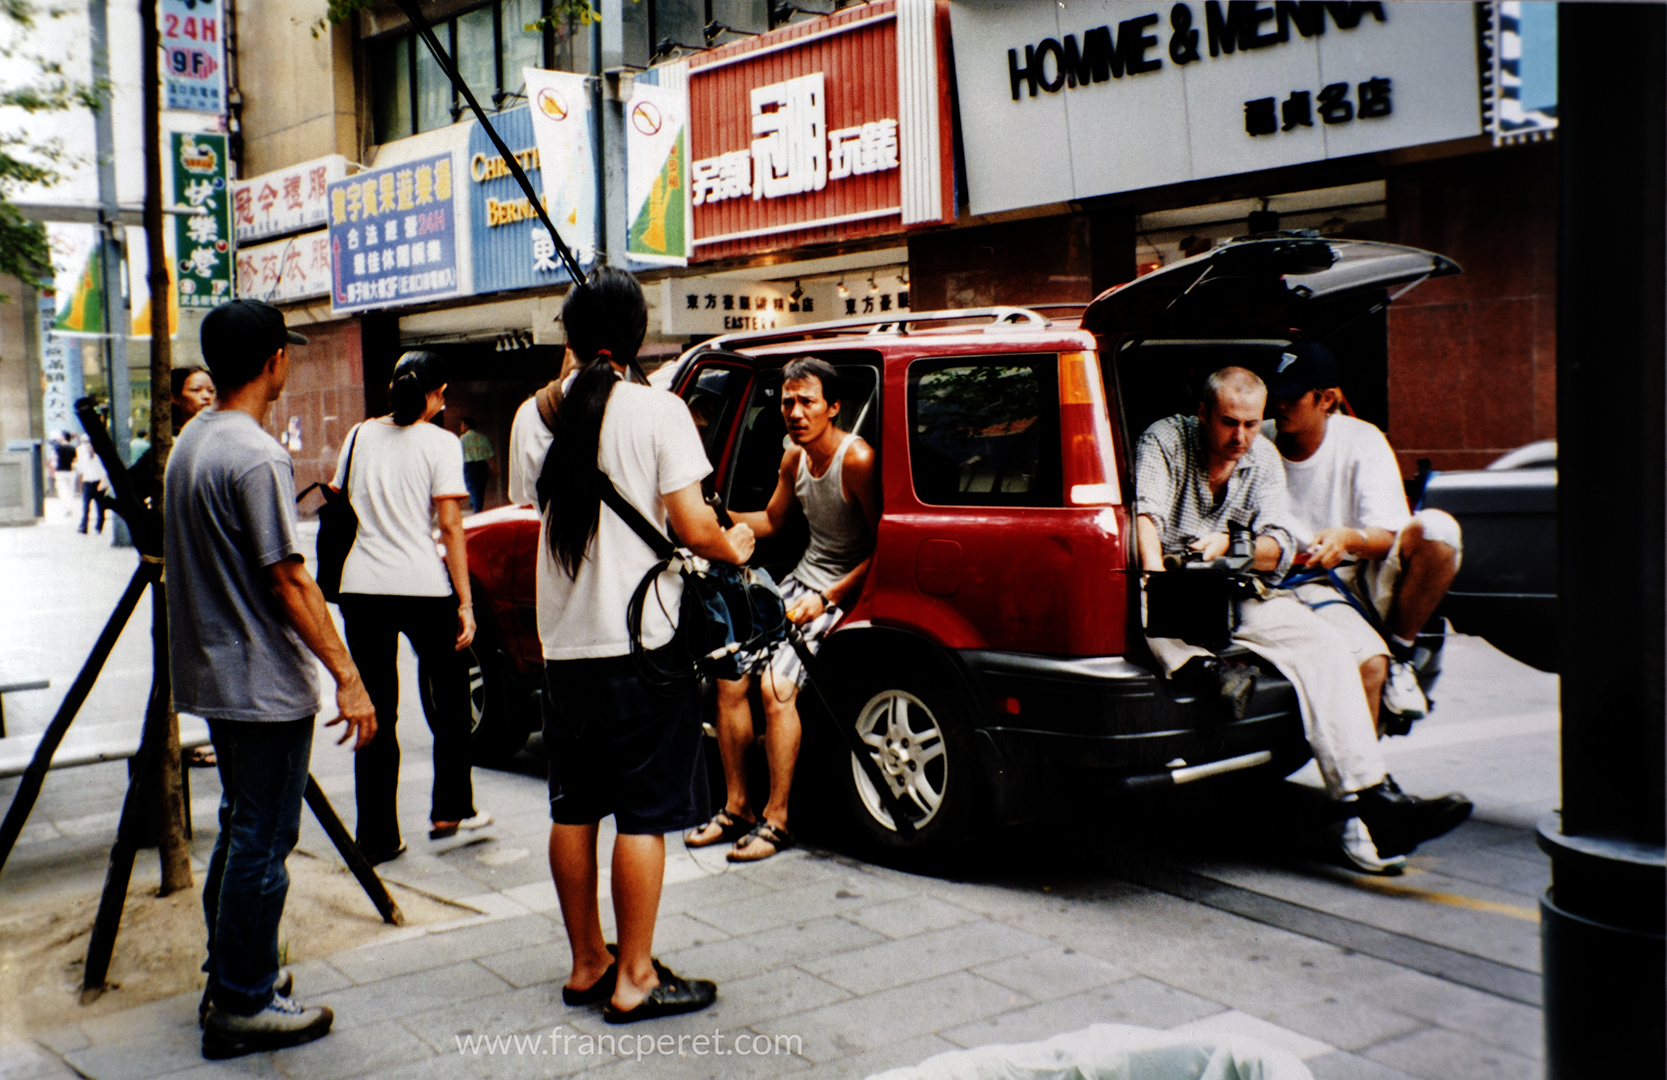 The personal car of the Director was used a the dolly to track some running shots in the street of Taipei.